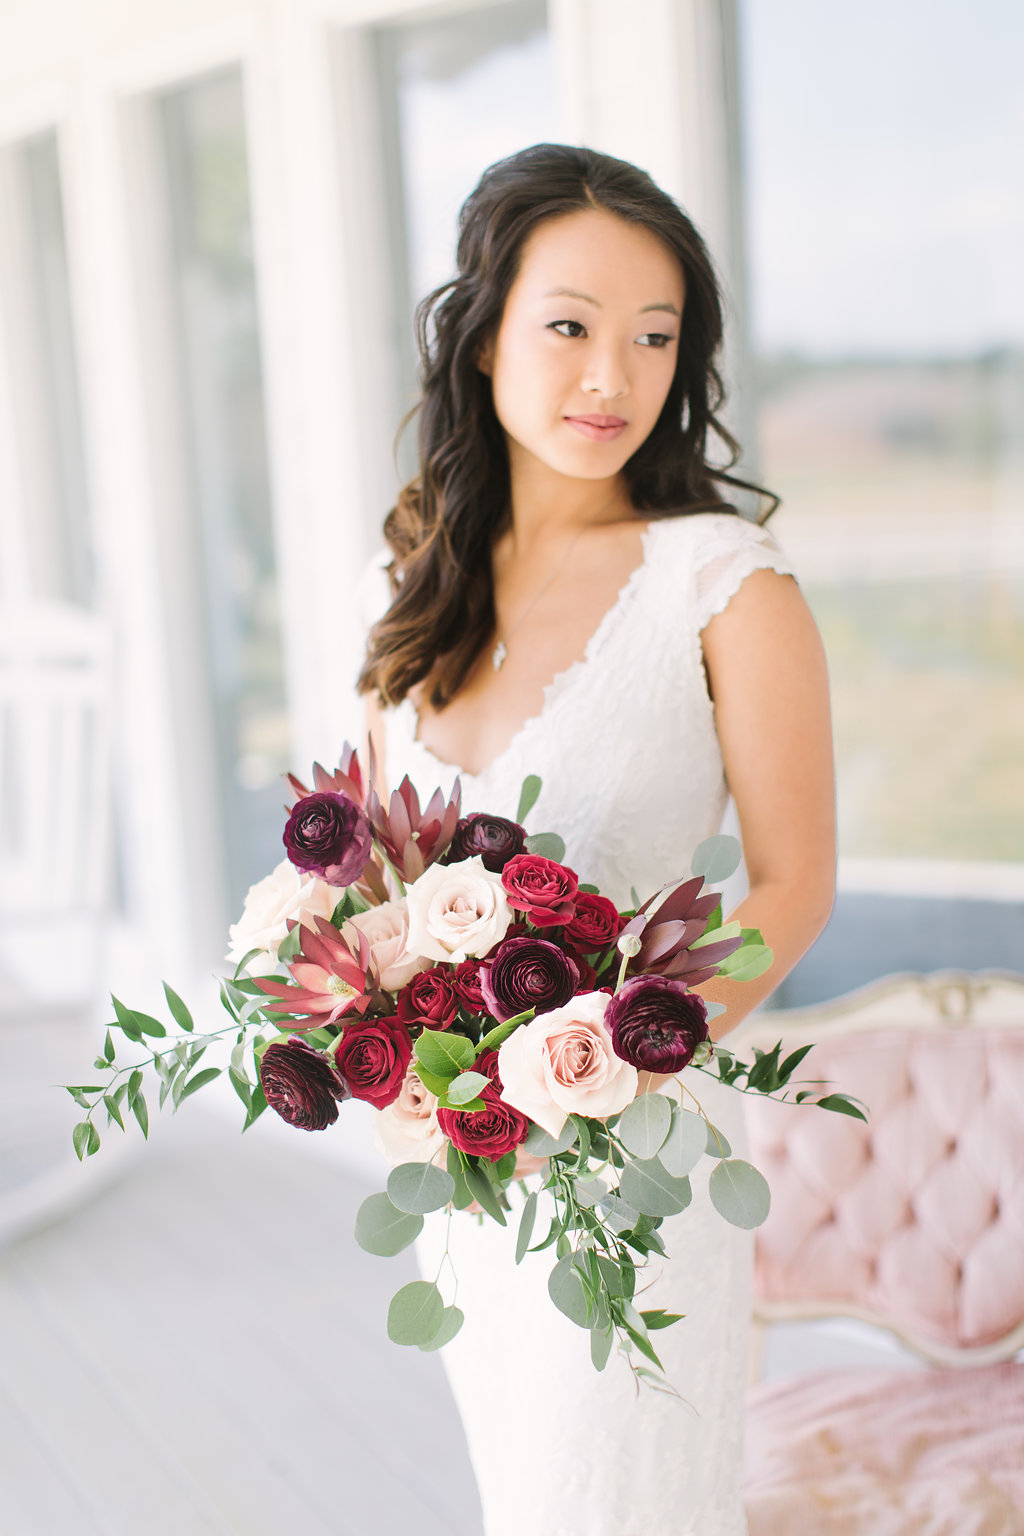 Step 1 : SELECT YOUR COLOR PALETTE AND STYLE FROM OUR FLORAL COLLECTIONS - Choose the collection that reflects your wedding style! Our team has carefully created timeless and romantic bouquets, centerpieces and more in beautiful color palettes, designed to maximize your budget. Simply click